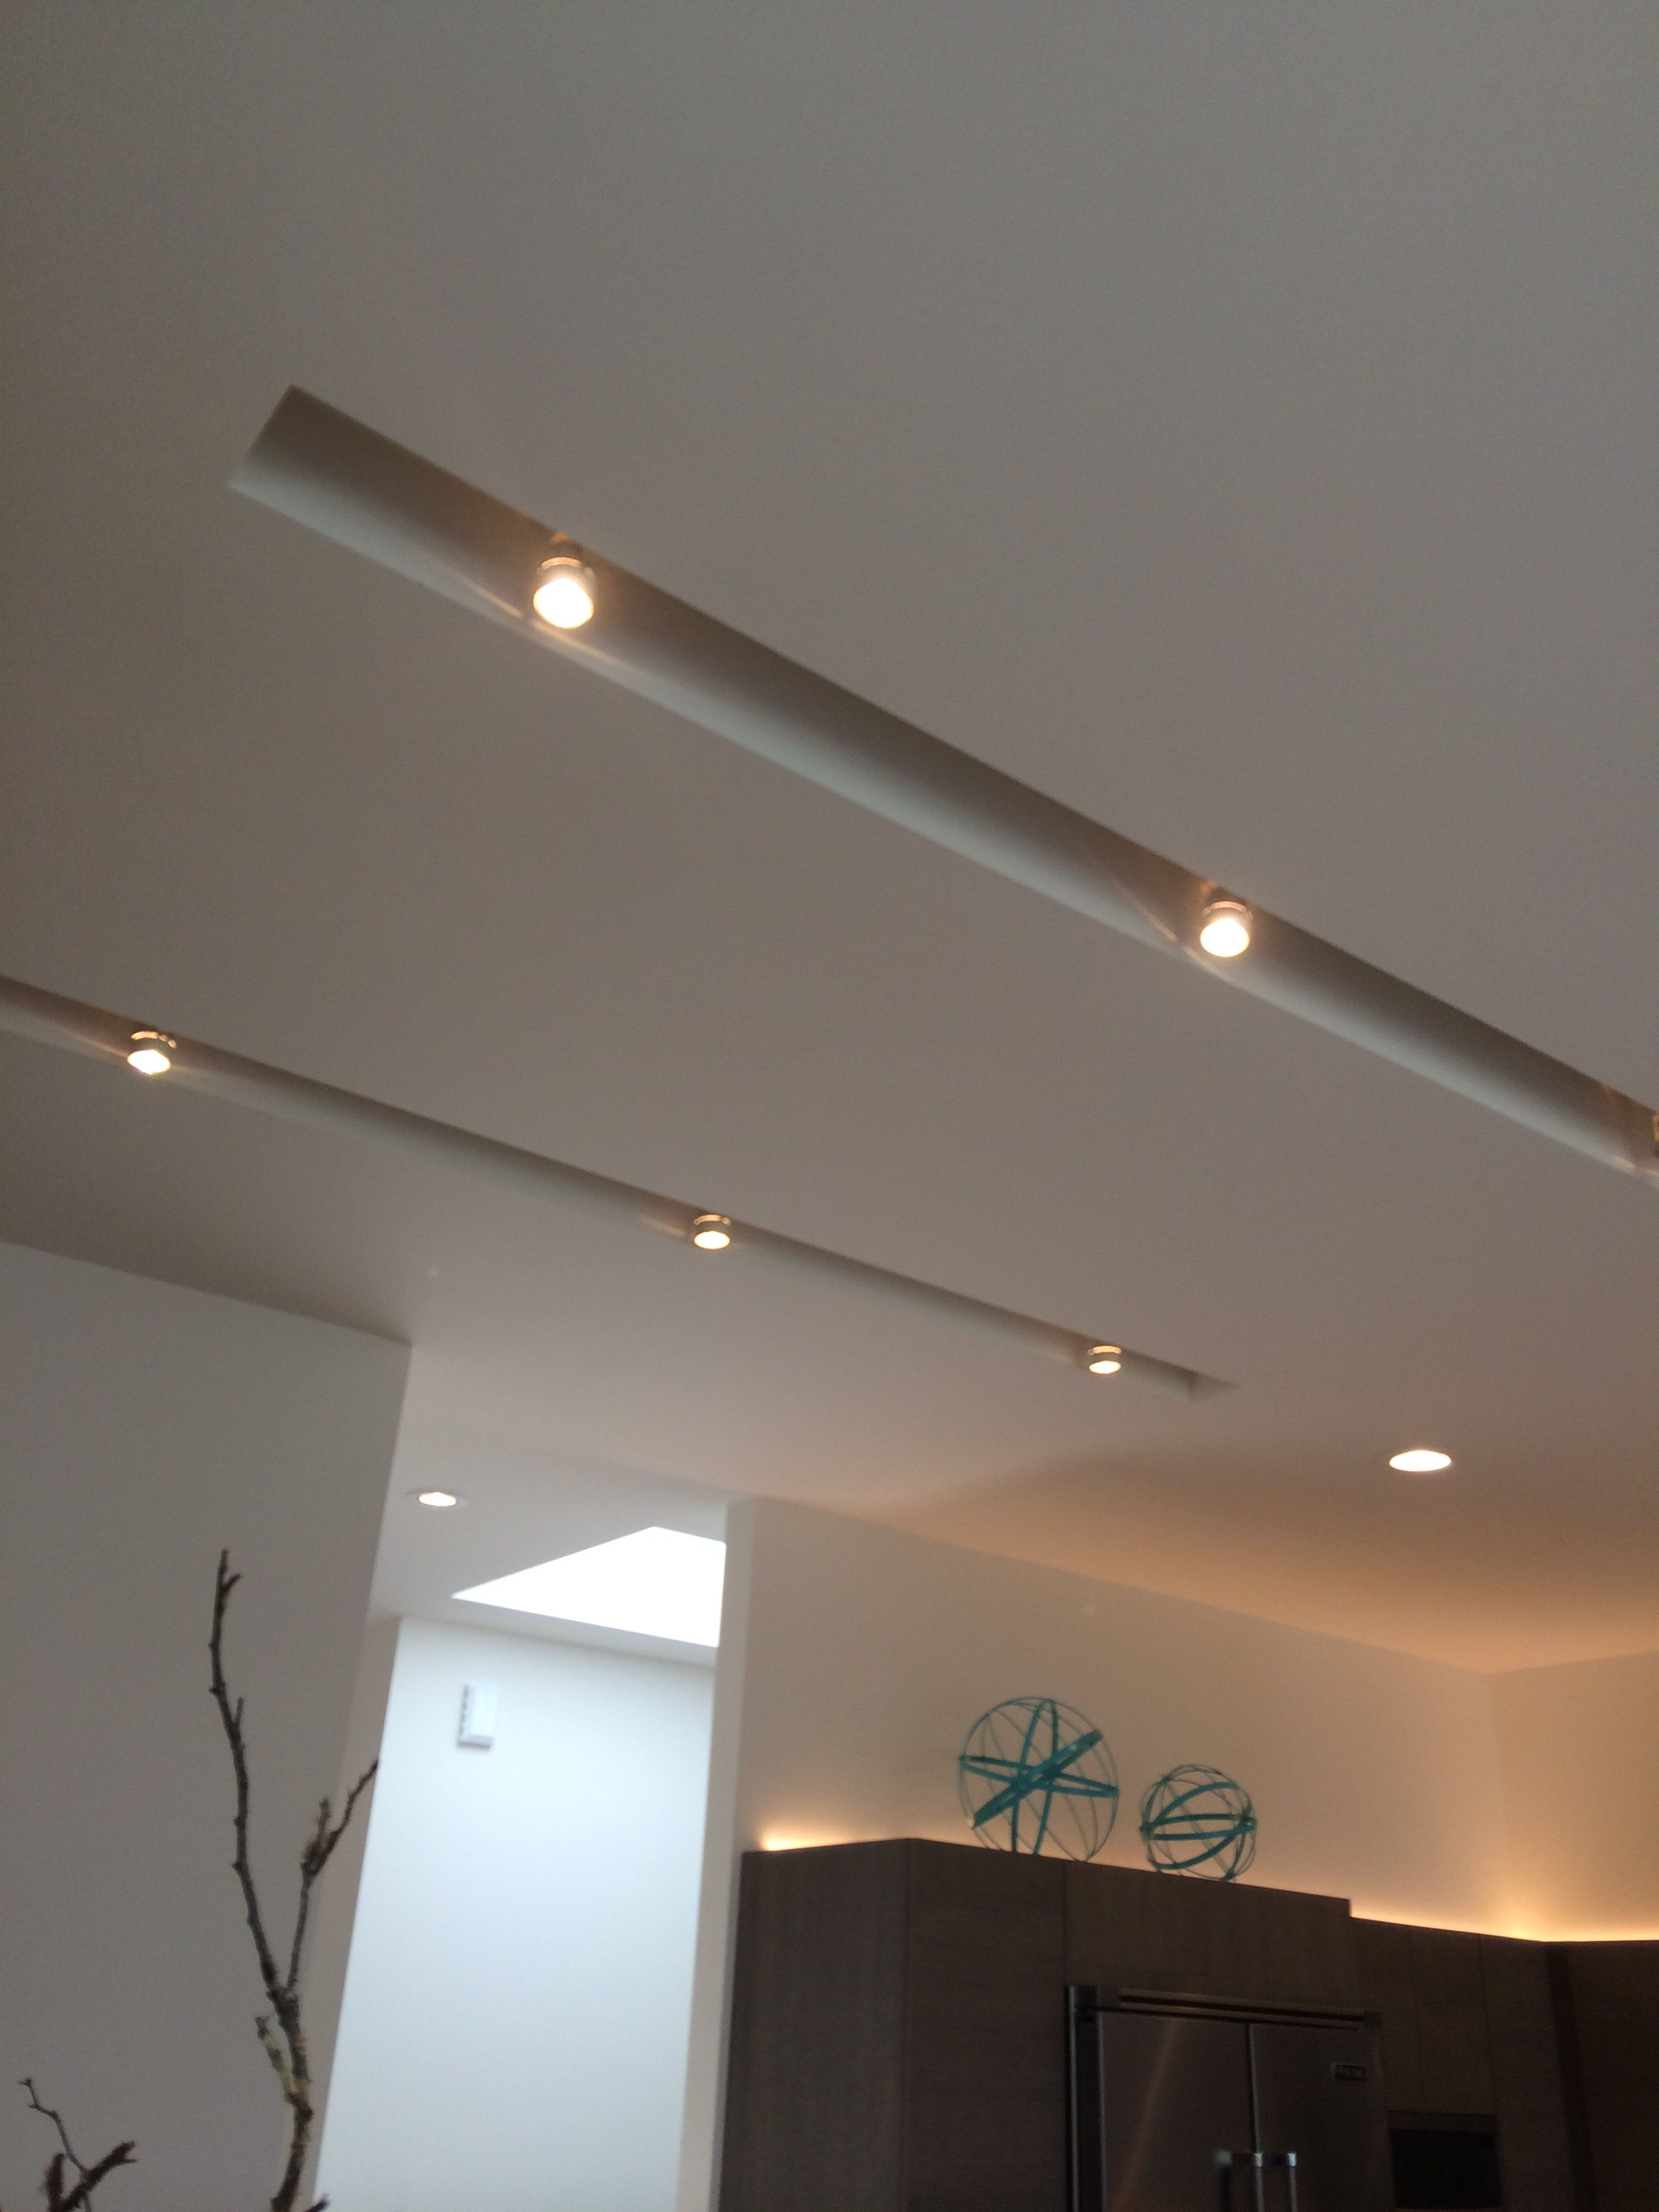 track lighting ceiling. I Love This Use Of Recessed Track Lighting. It\u0027s Supper Clean And Contemporary! Lighting Ceiling S